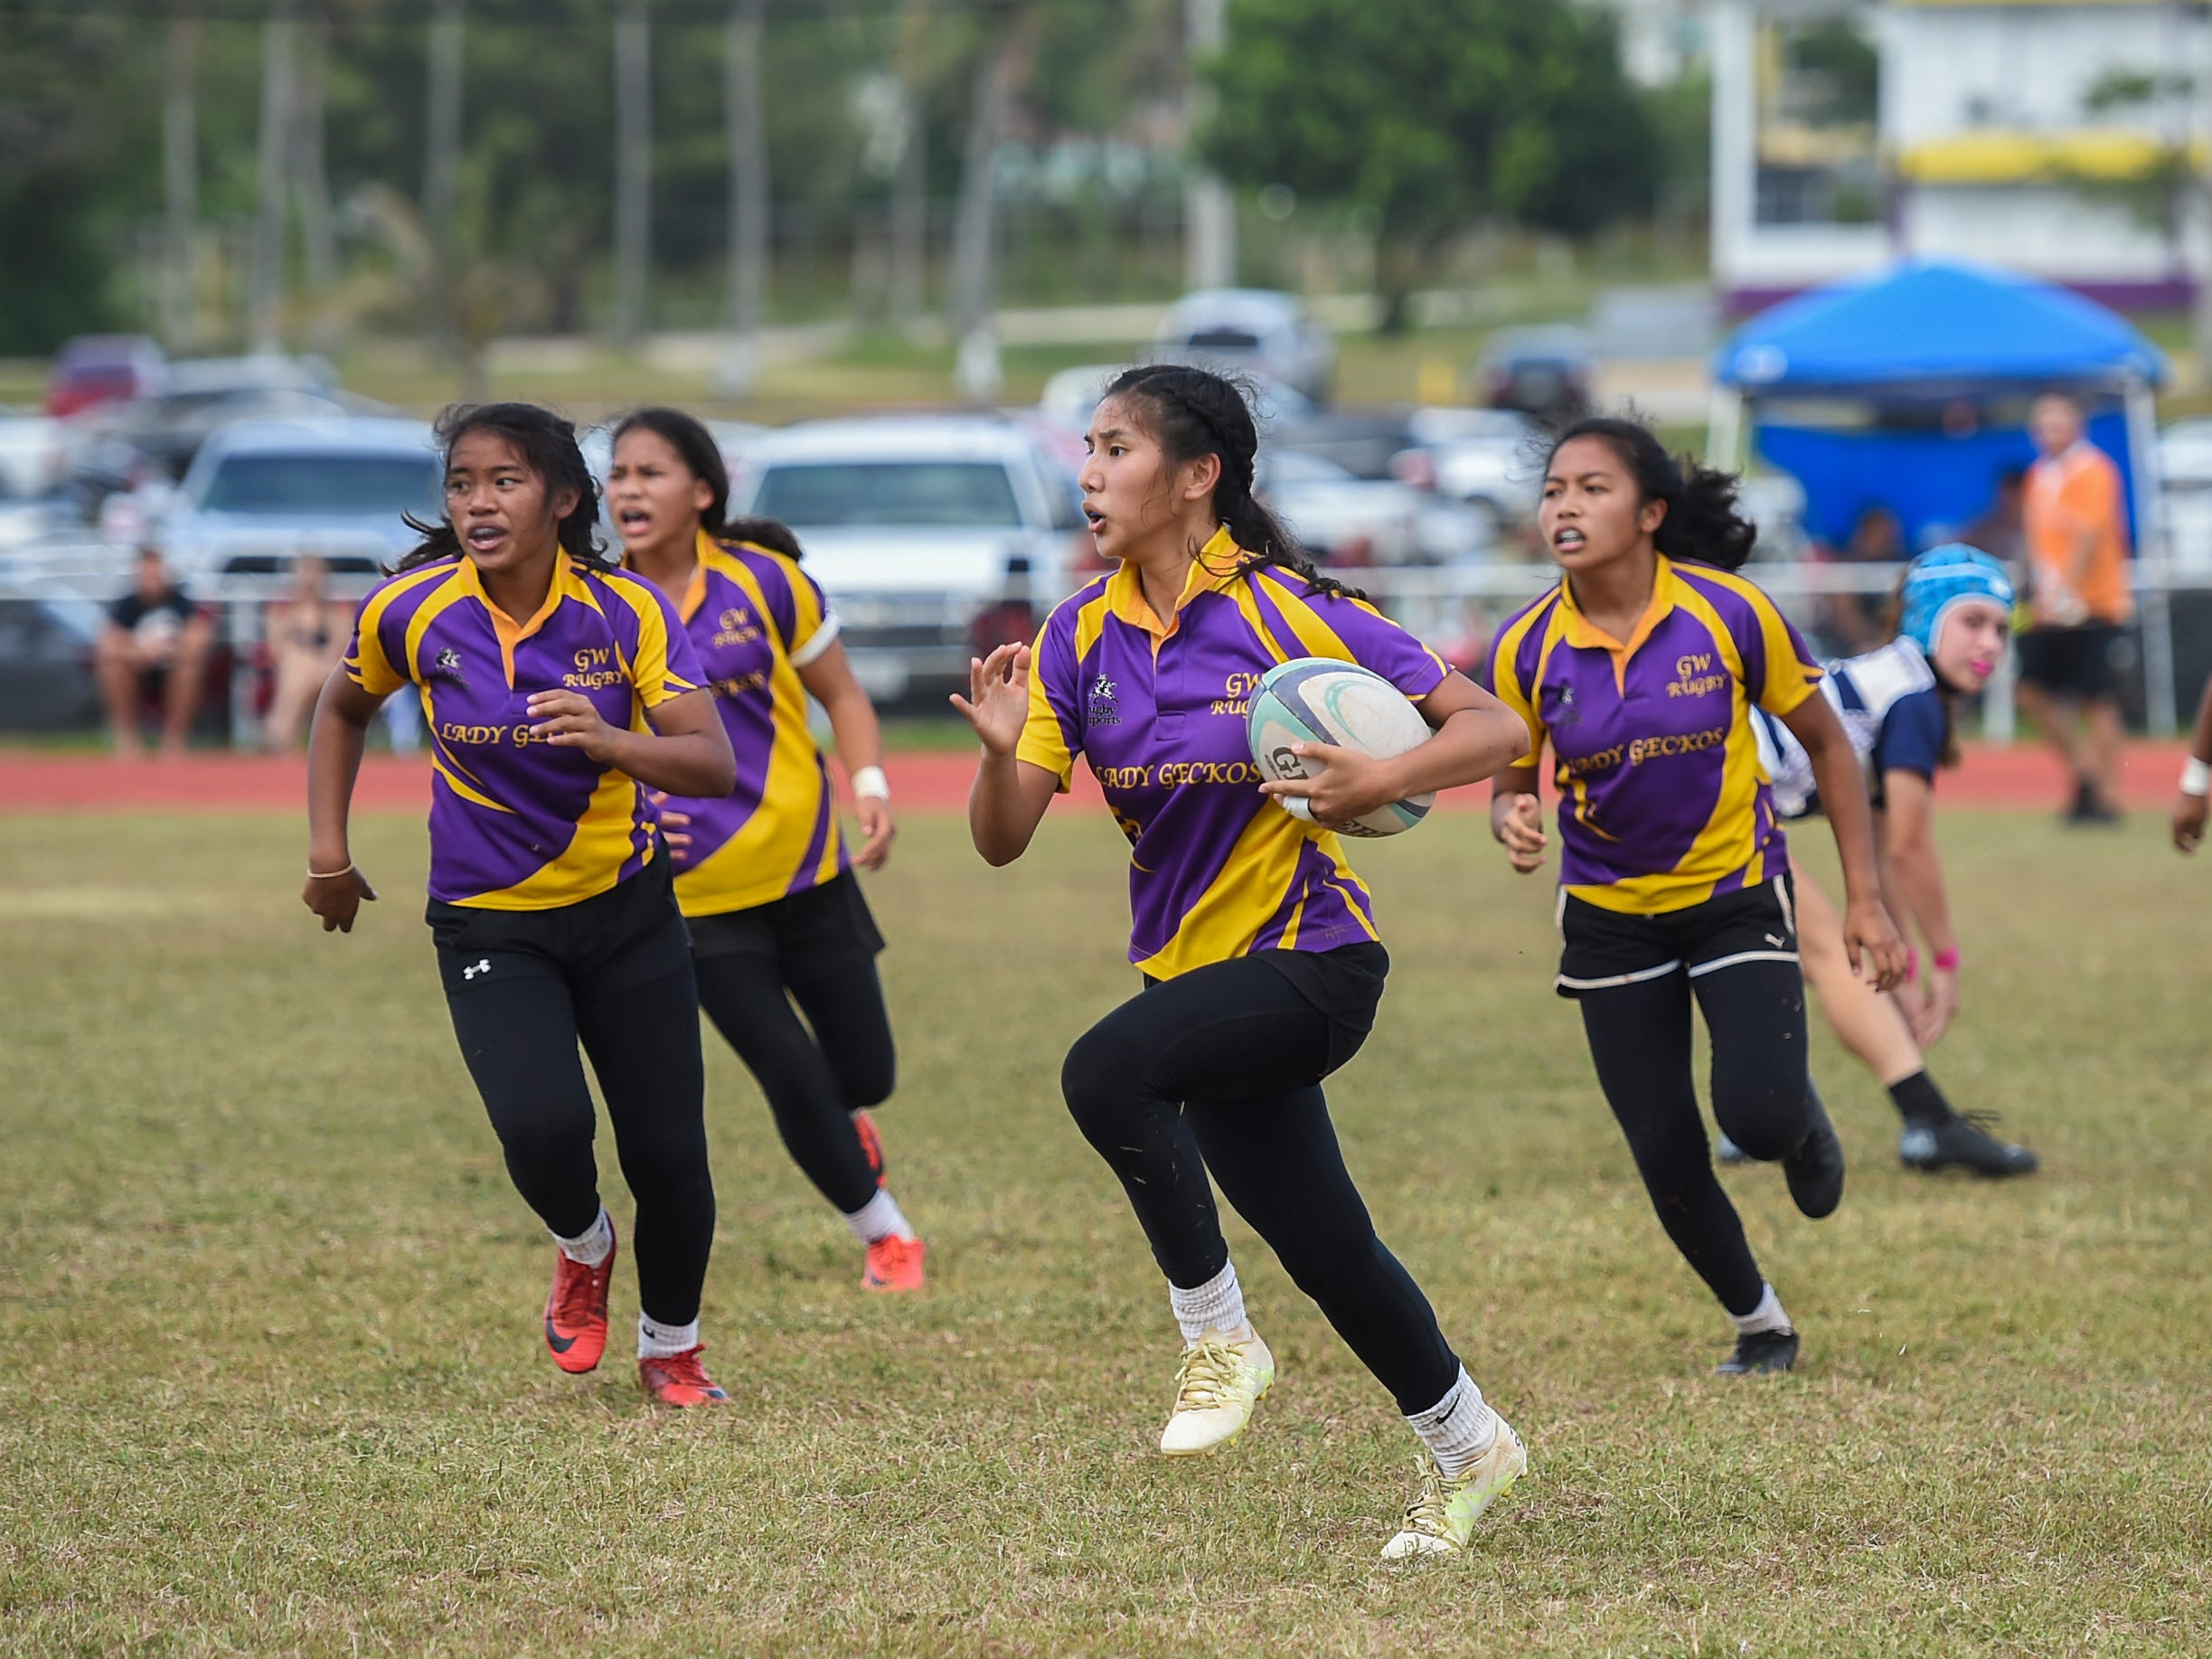 George Washington player Sawyer Park runs the ball against the Notre Dame Royals during their GRFU/IIAAG Girls Rugby Finals game at the GW High School Field in Mangilao, March 16, 2019. Park had scored tries in a 21-17 loss to the Royals for the rugby title.